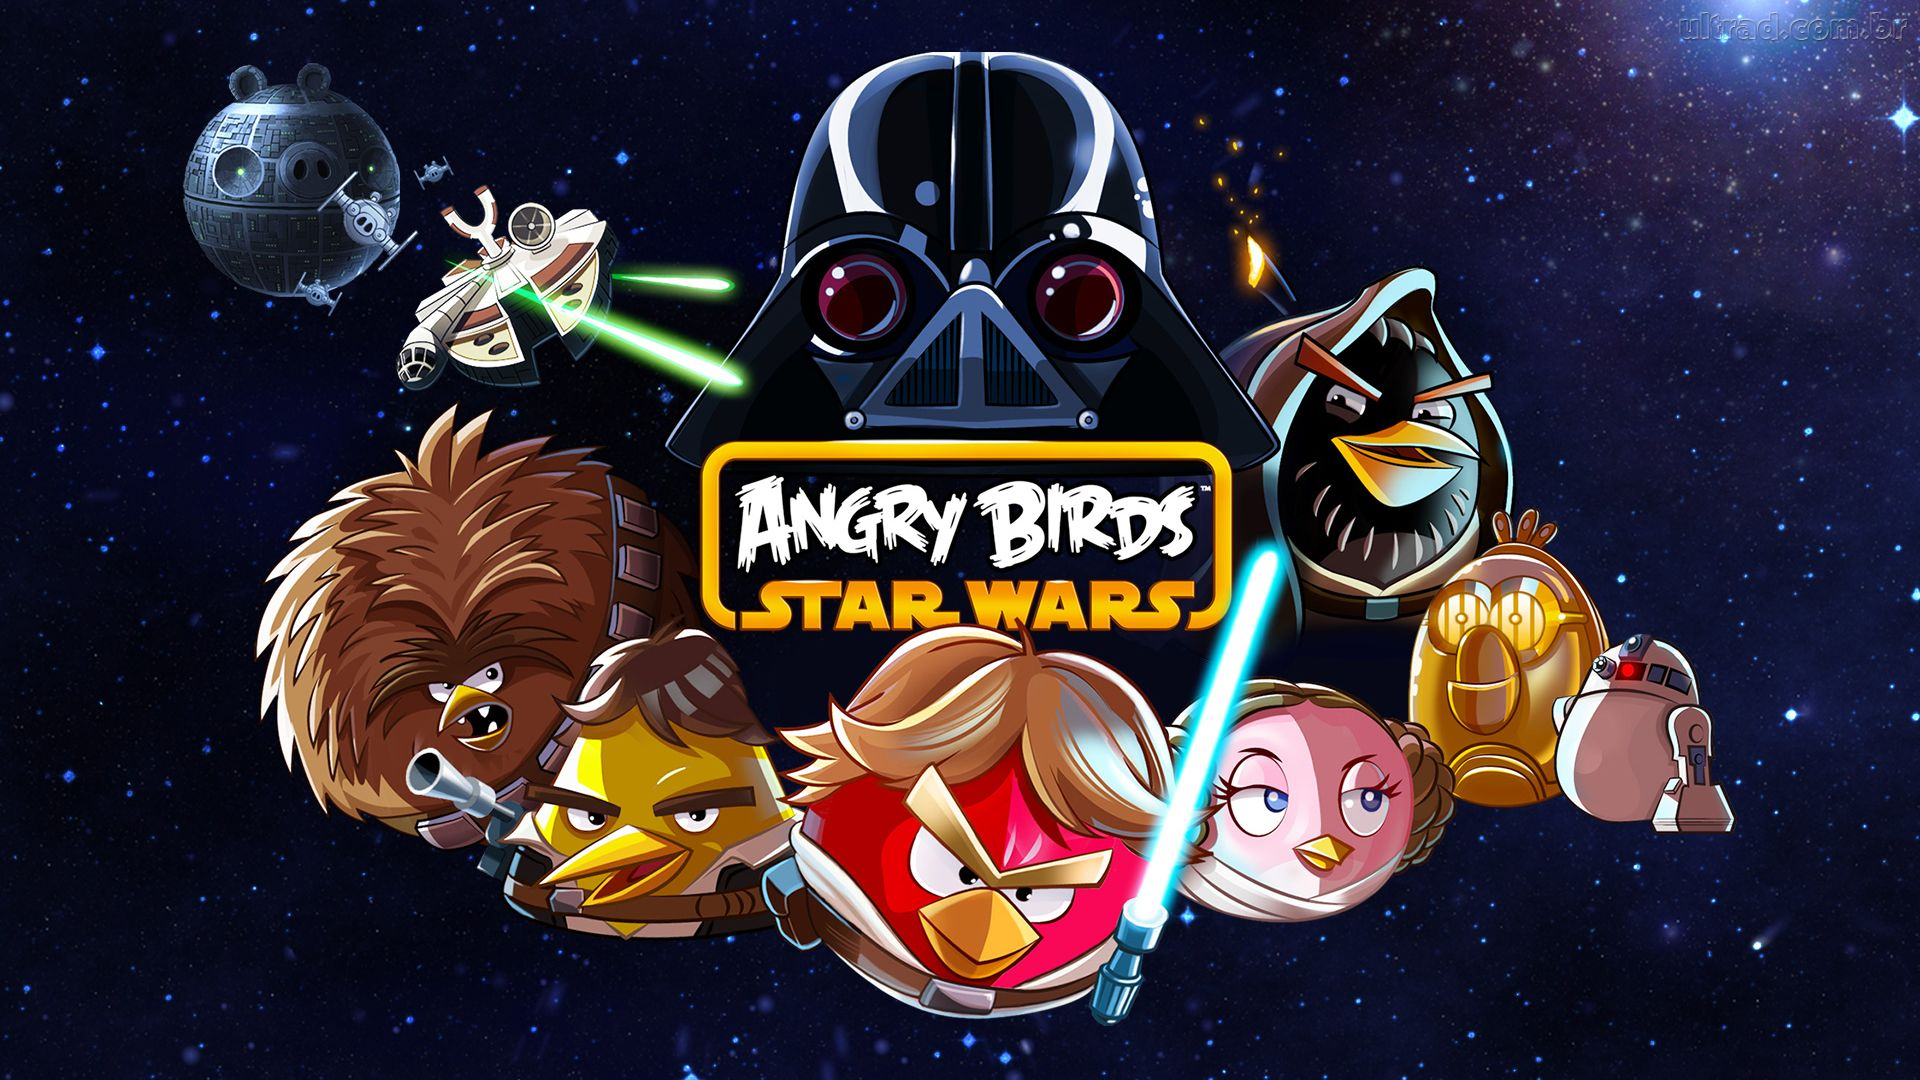 Angry Birds Star Wars wallpaper 10